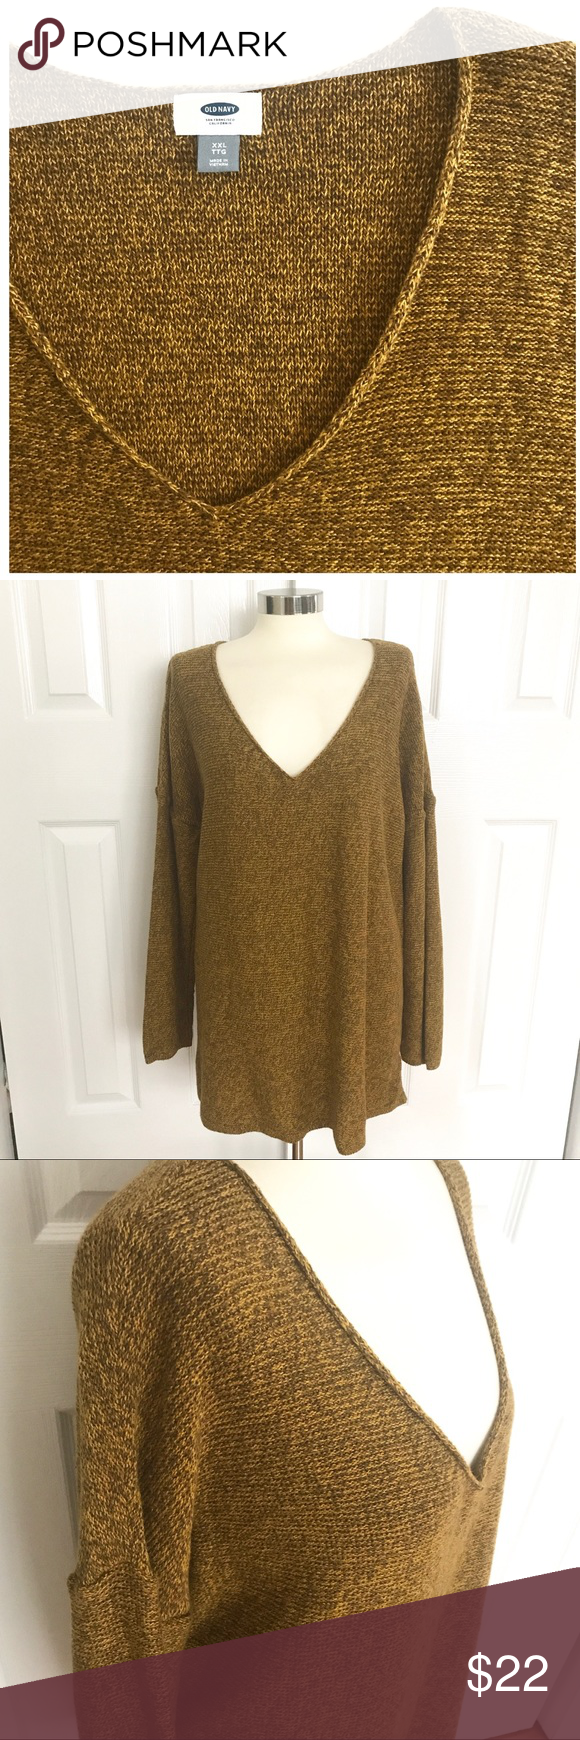 Old Navy Vneck Sweater | Mustard yellow, Navy sweaters and Mustard